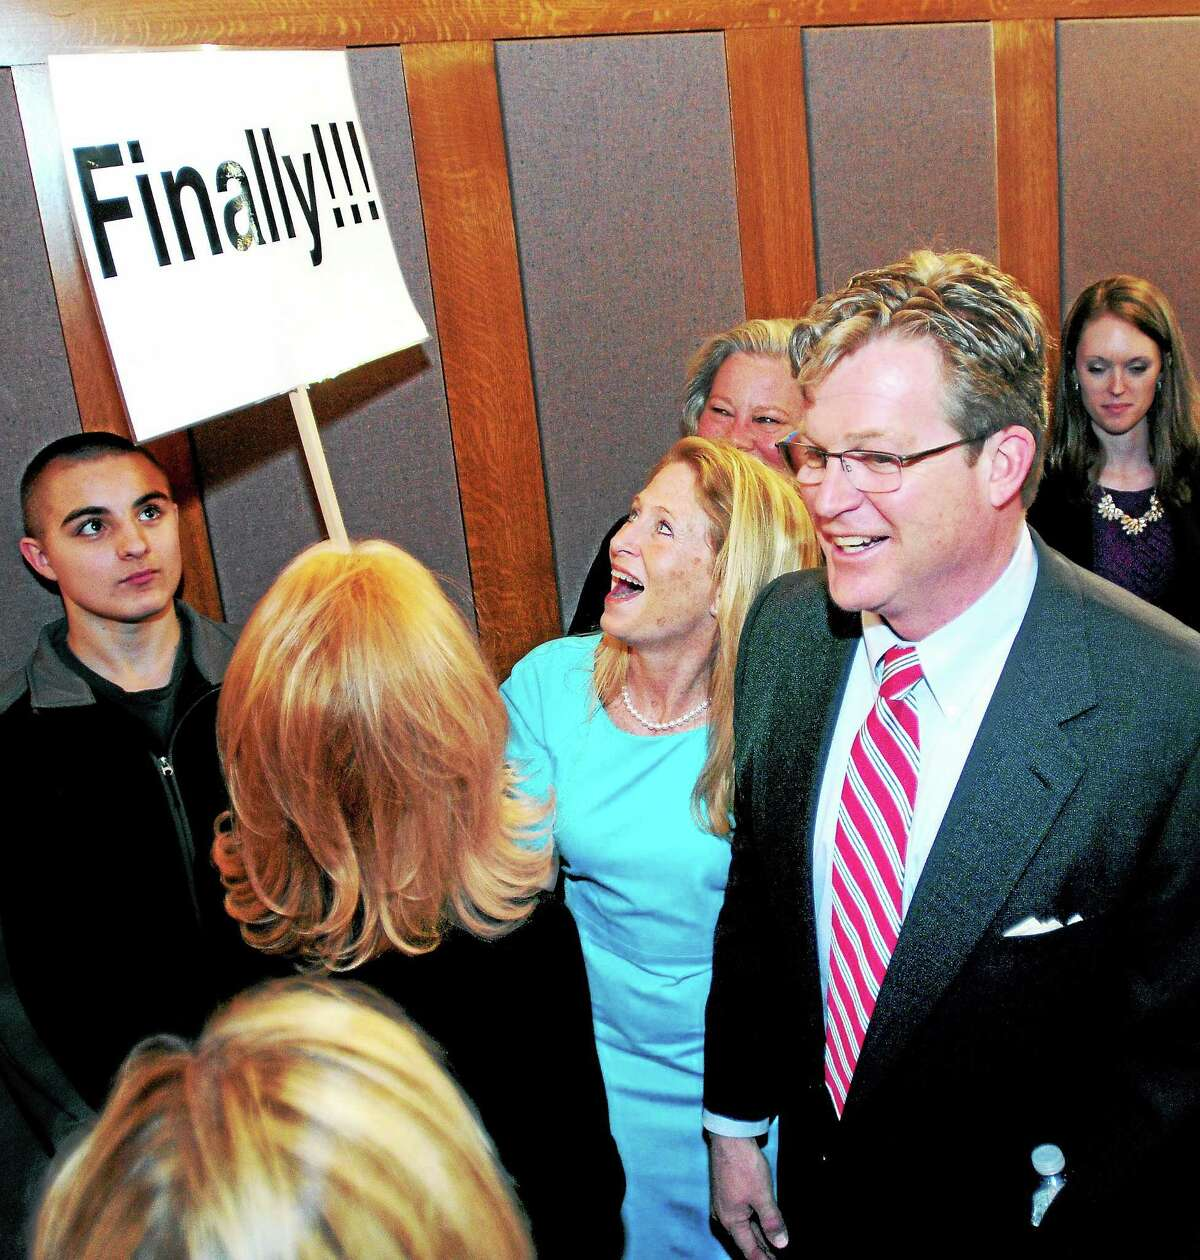 """Ted Kennedy Jr., right, and his wife, Kiki, center, share a laugh with their neighbor who made a """"Finally!!!"""" sign for his announcement to run for a state Senate seat at the Blackstone Memorial Library in Branford on April 8."""